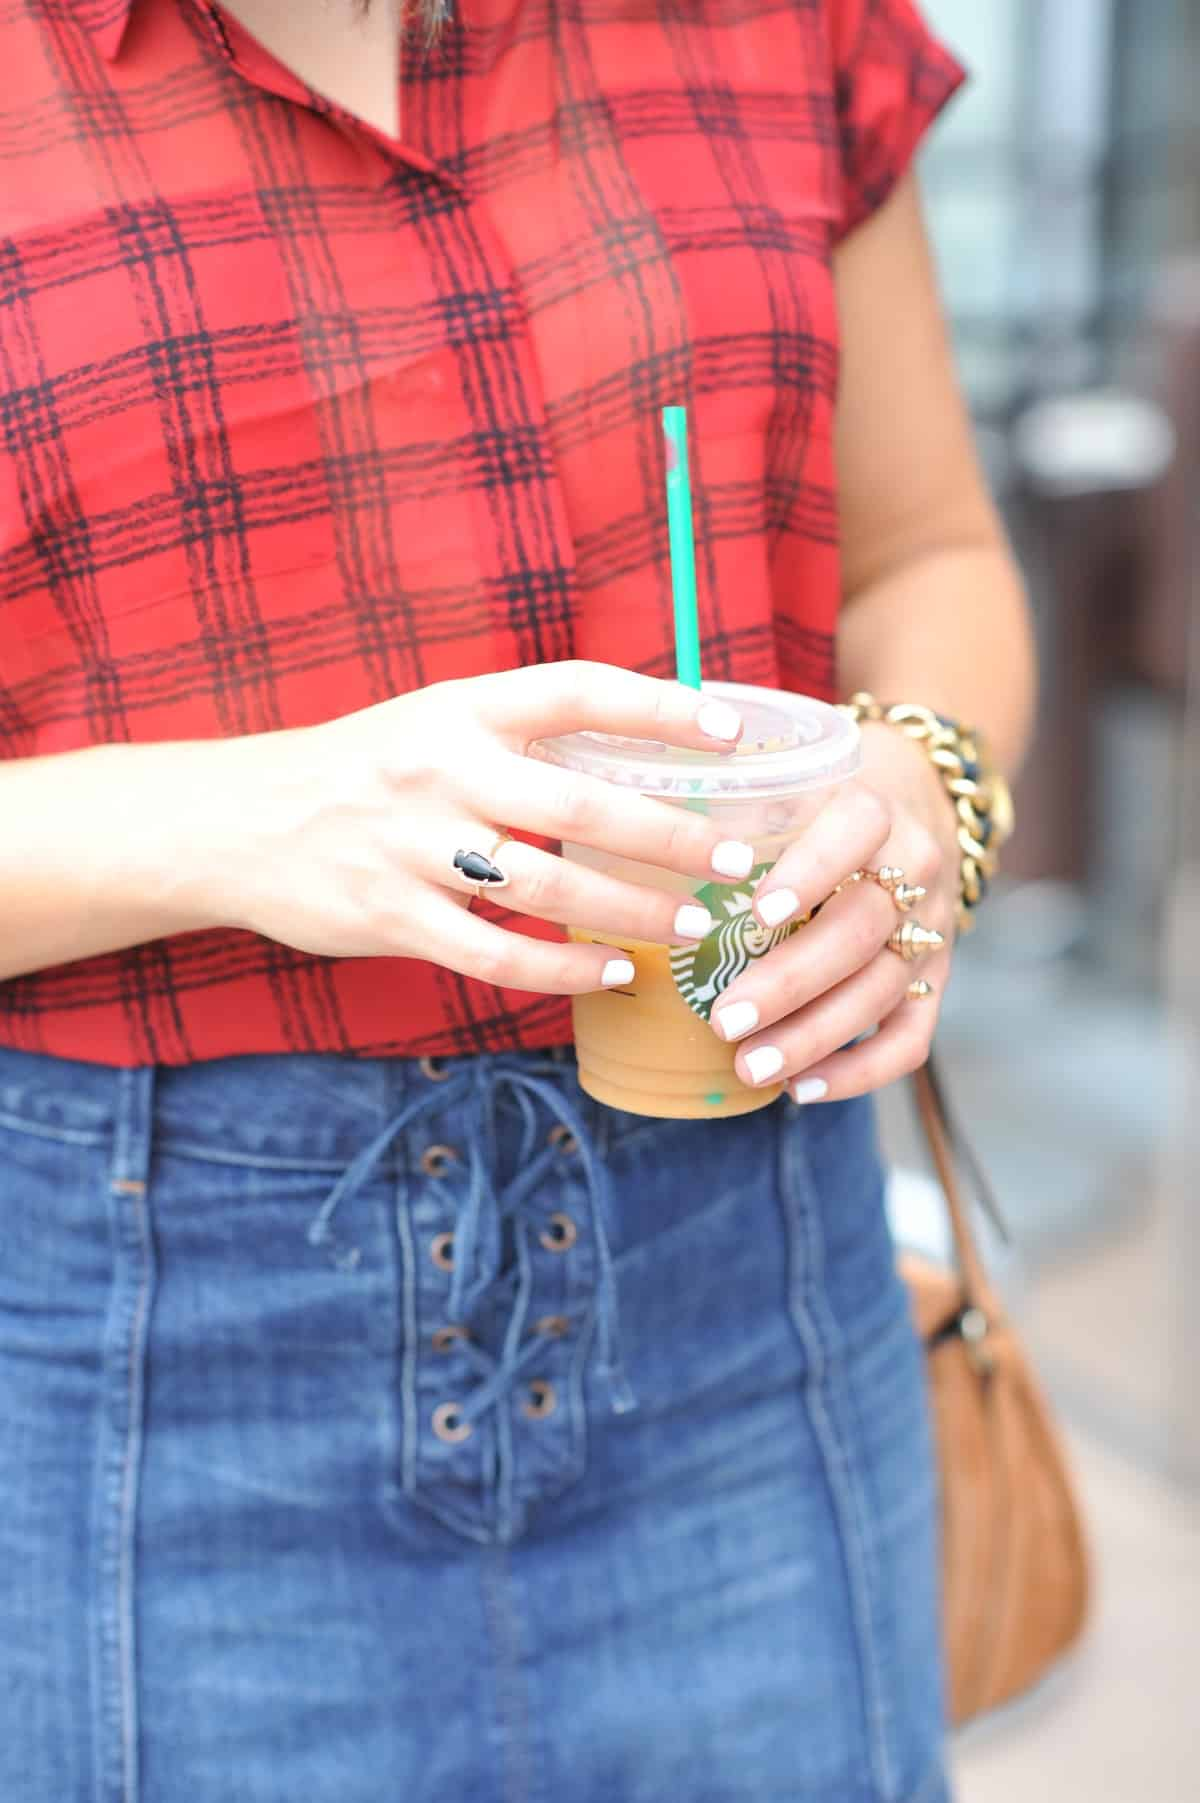 abercrombie and fitch denim mini skirt - nordstrom anniversary sale plaid shirt - My Style Vita @mystylevita